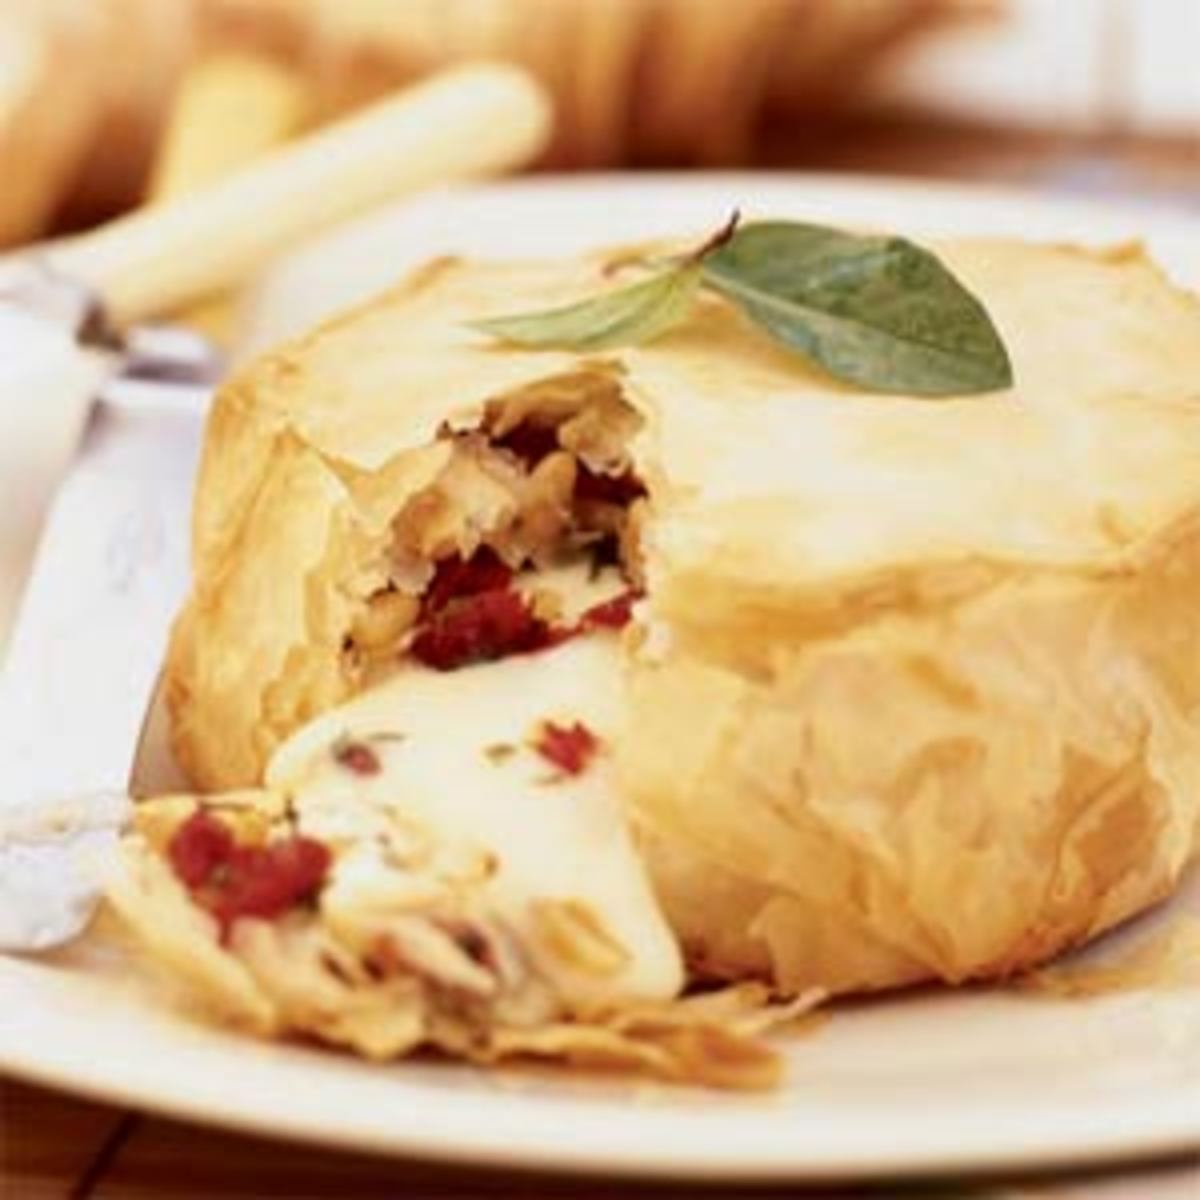 """Brie is an extremely popular French cheese that is often used as a """"stuffing"""" for savory pastries."""